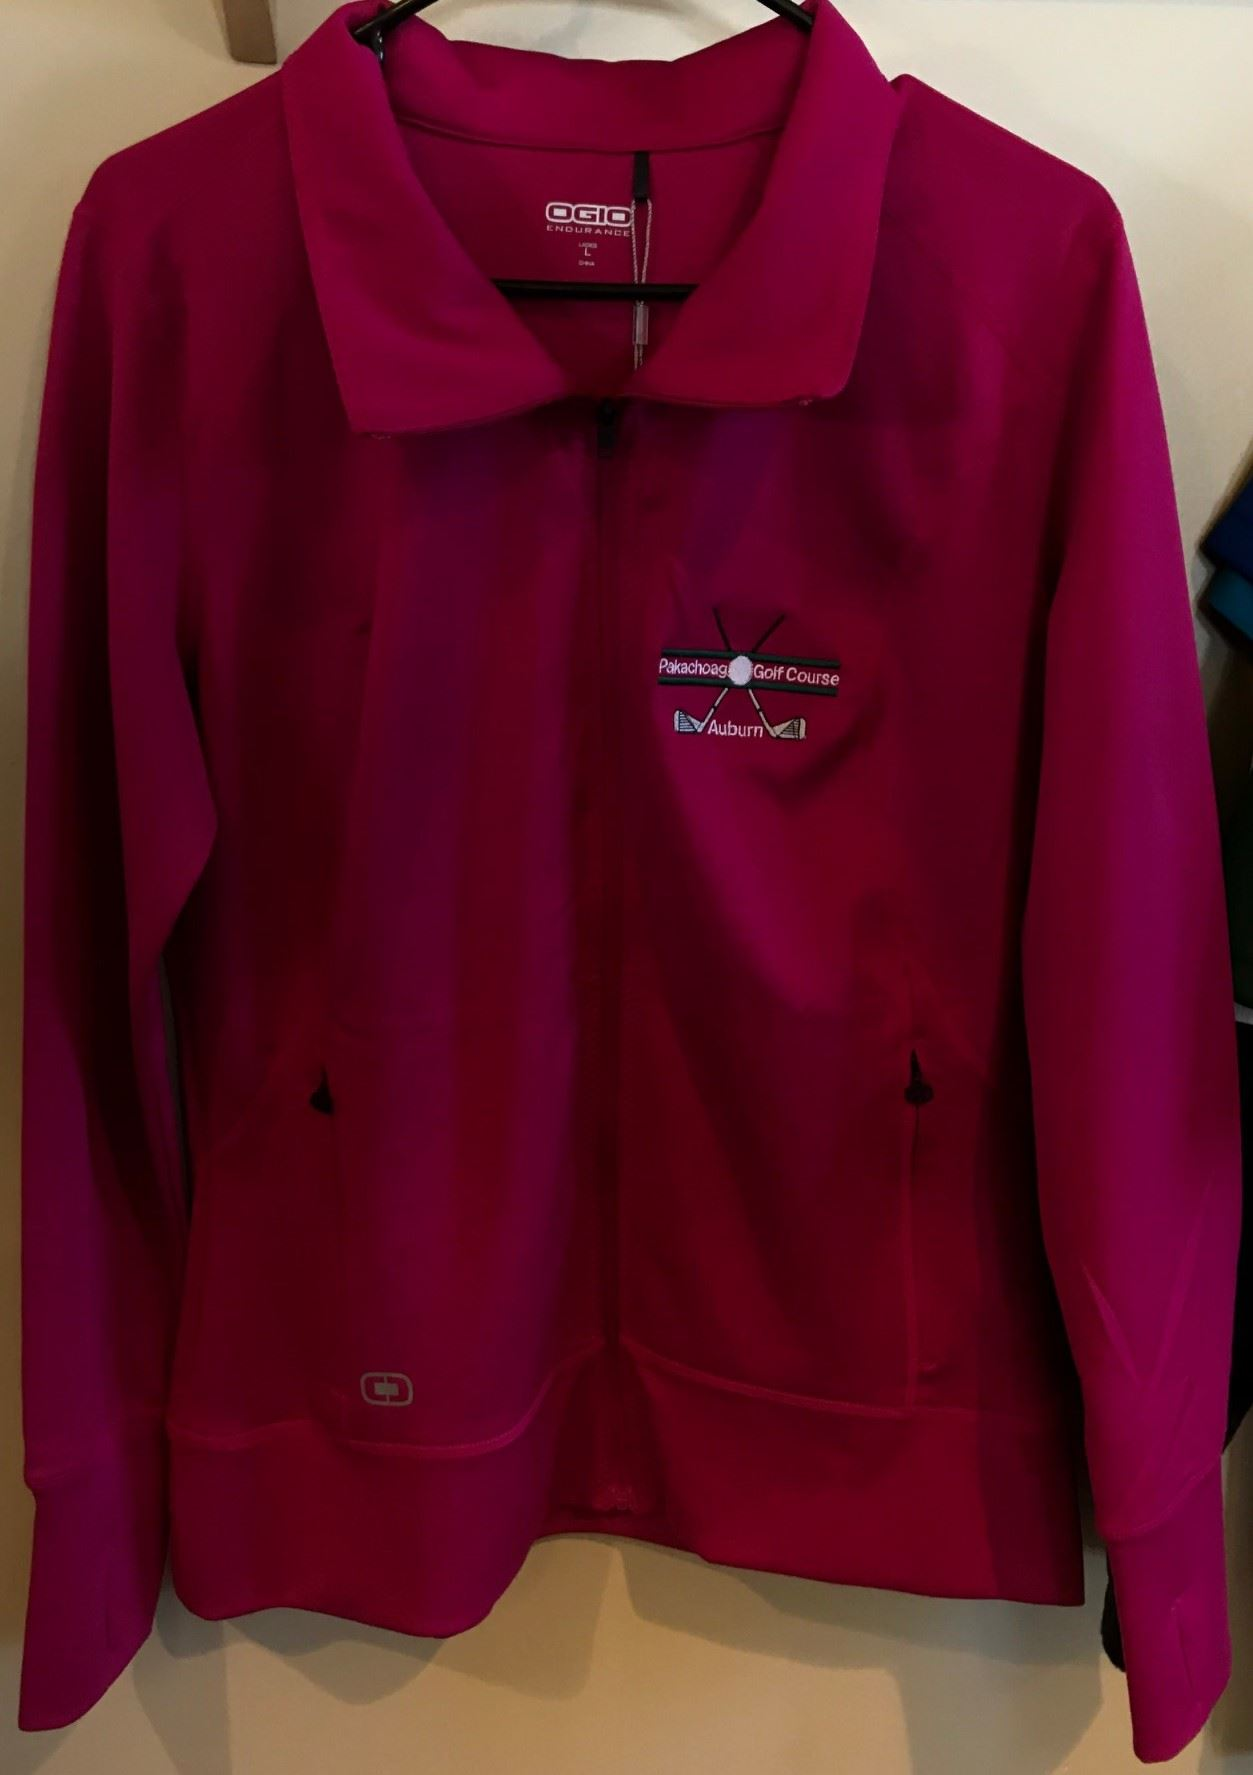 Long sleeve women's zip up jacket with golf course logo